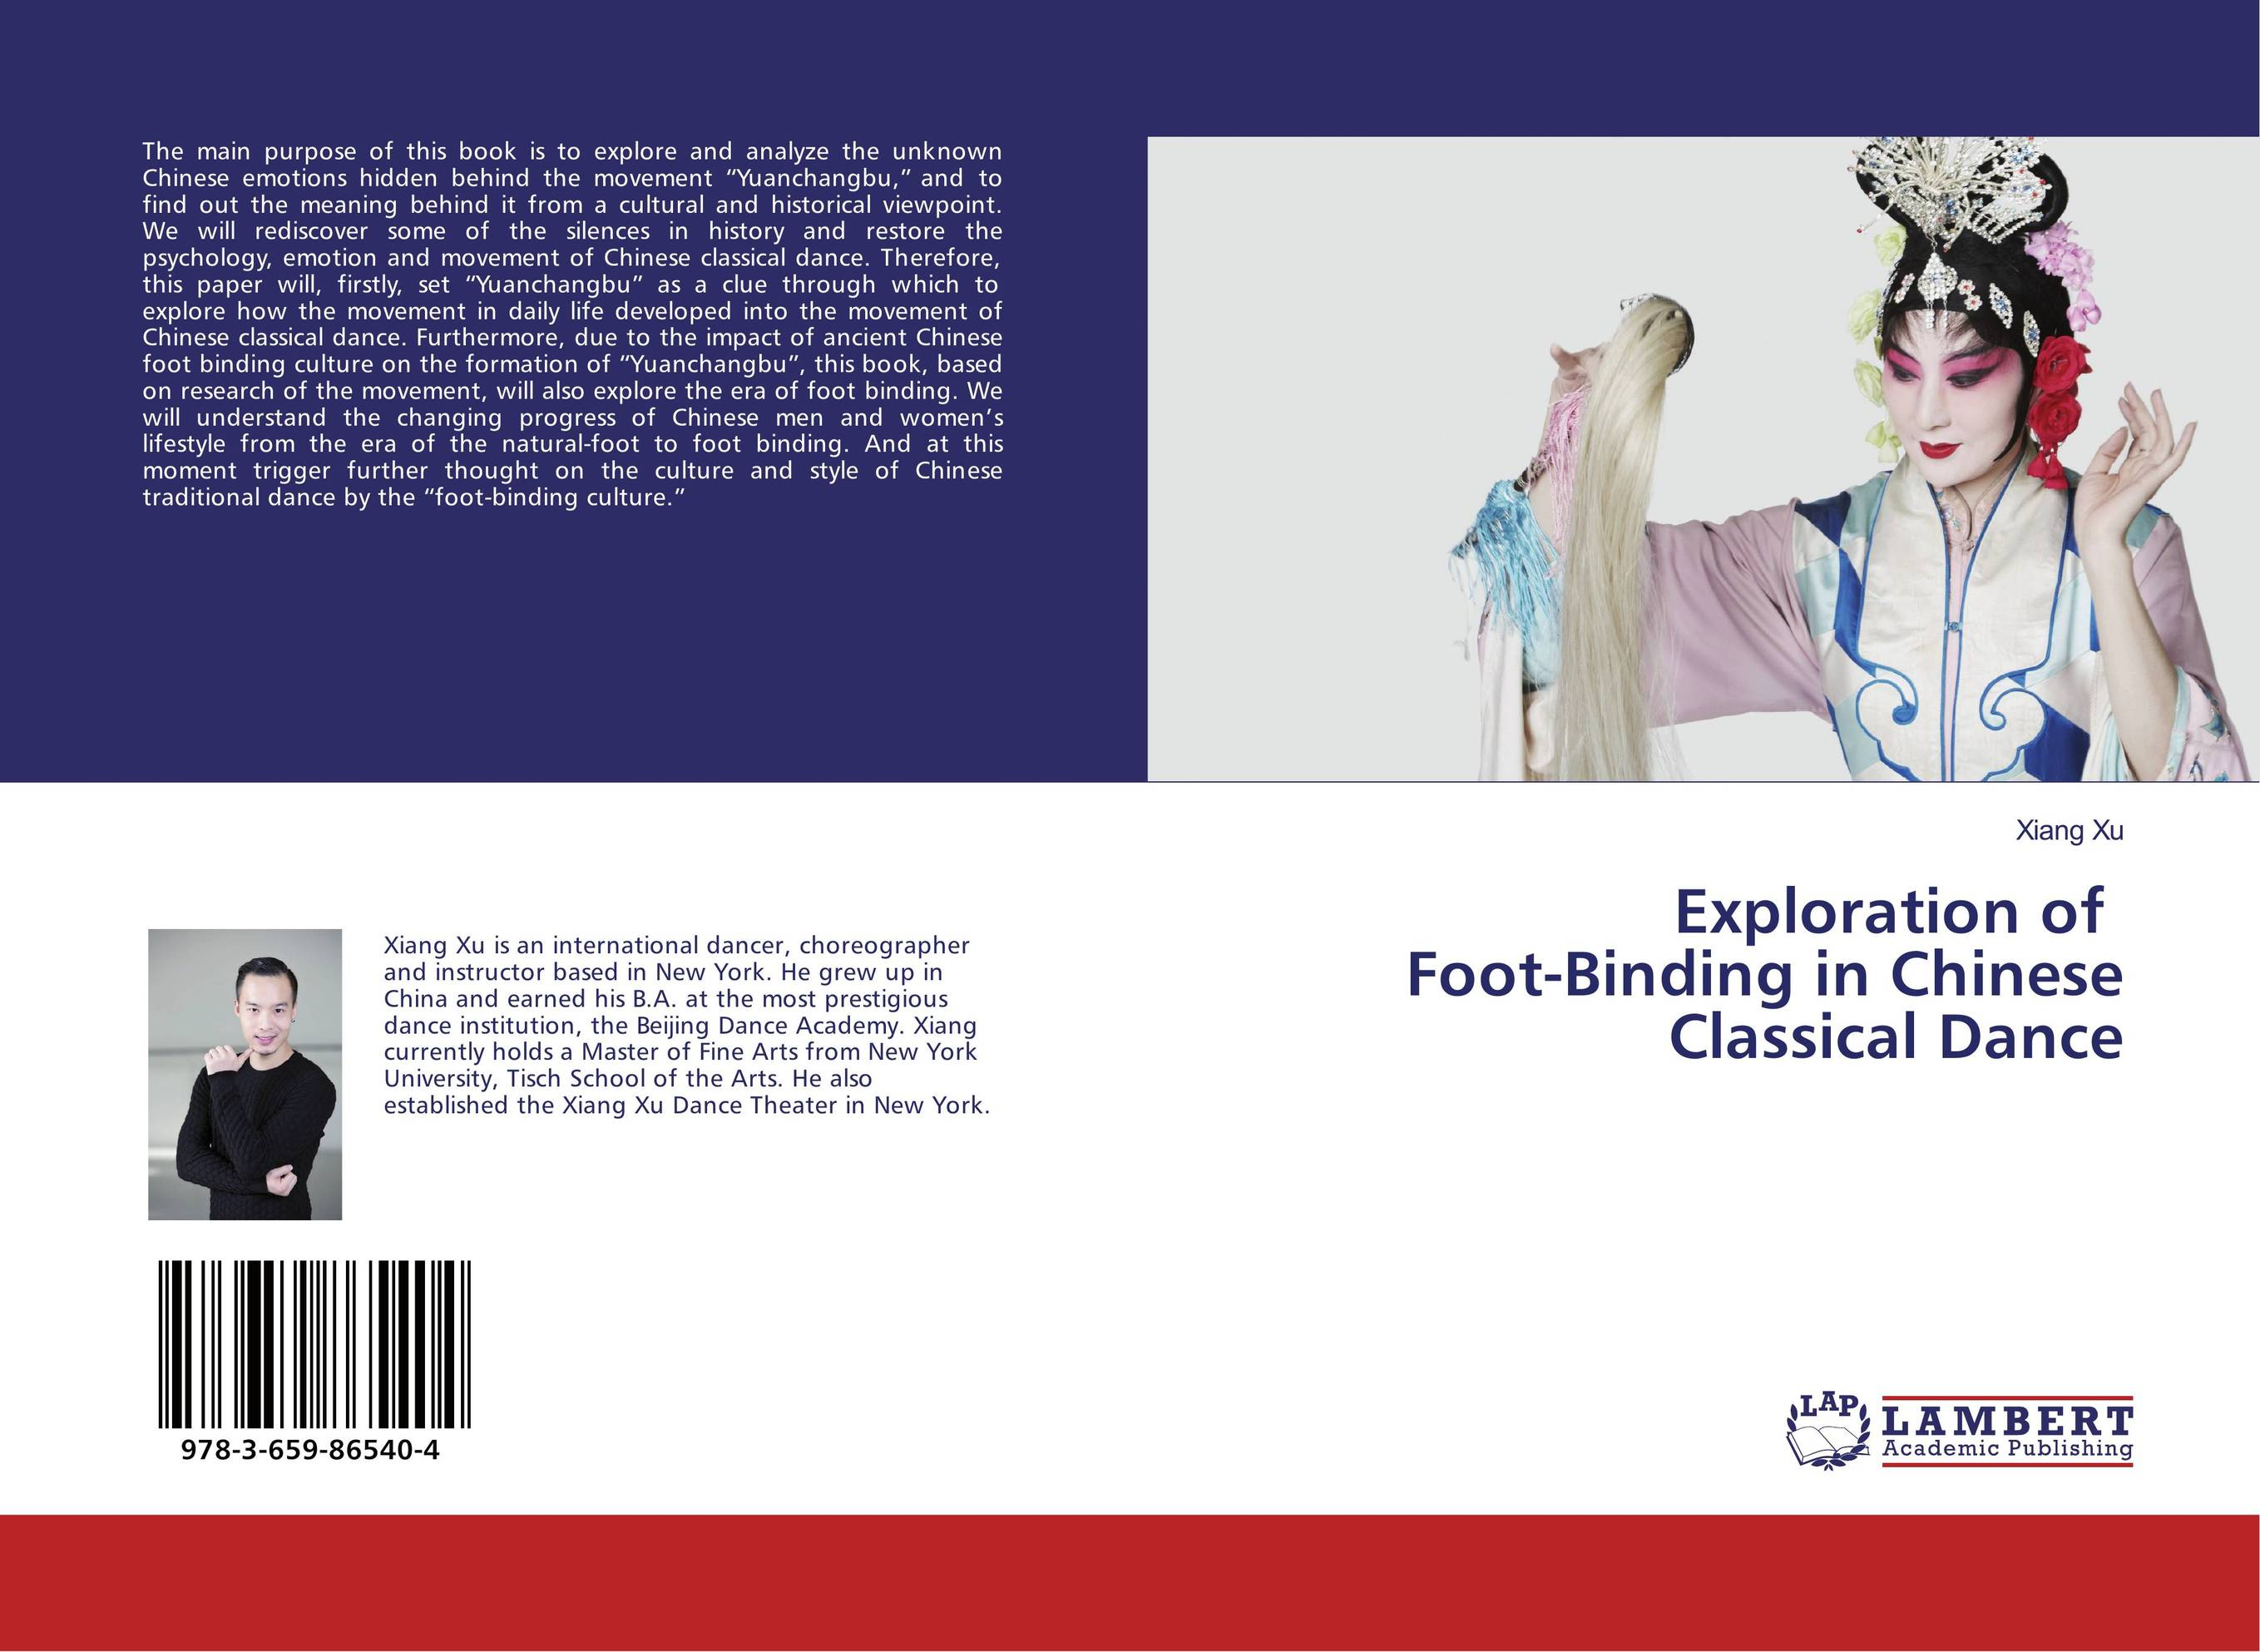 Exploration of Foot-Binding in Chinese Classical Dance smile at the foot of the ladder